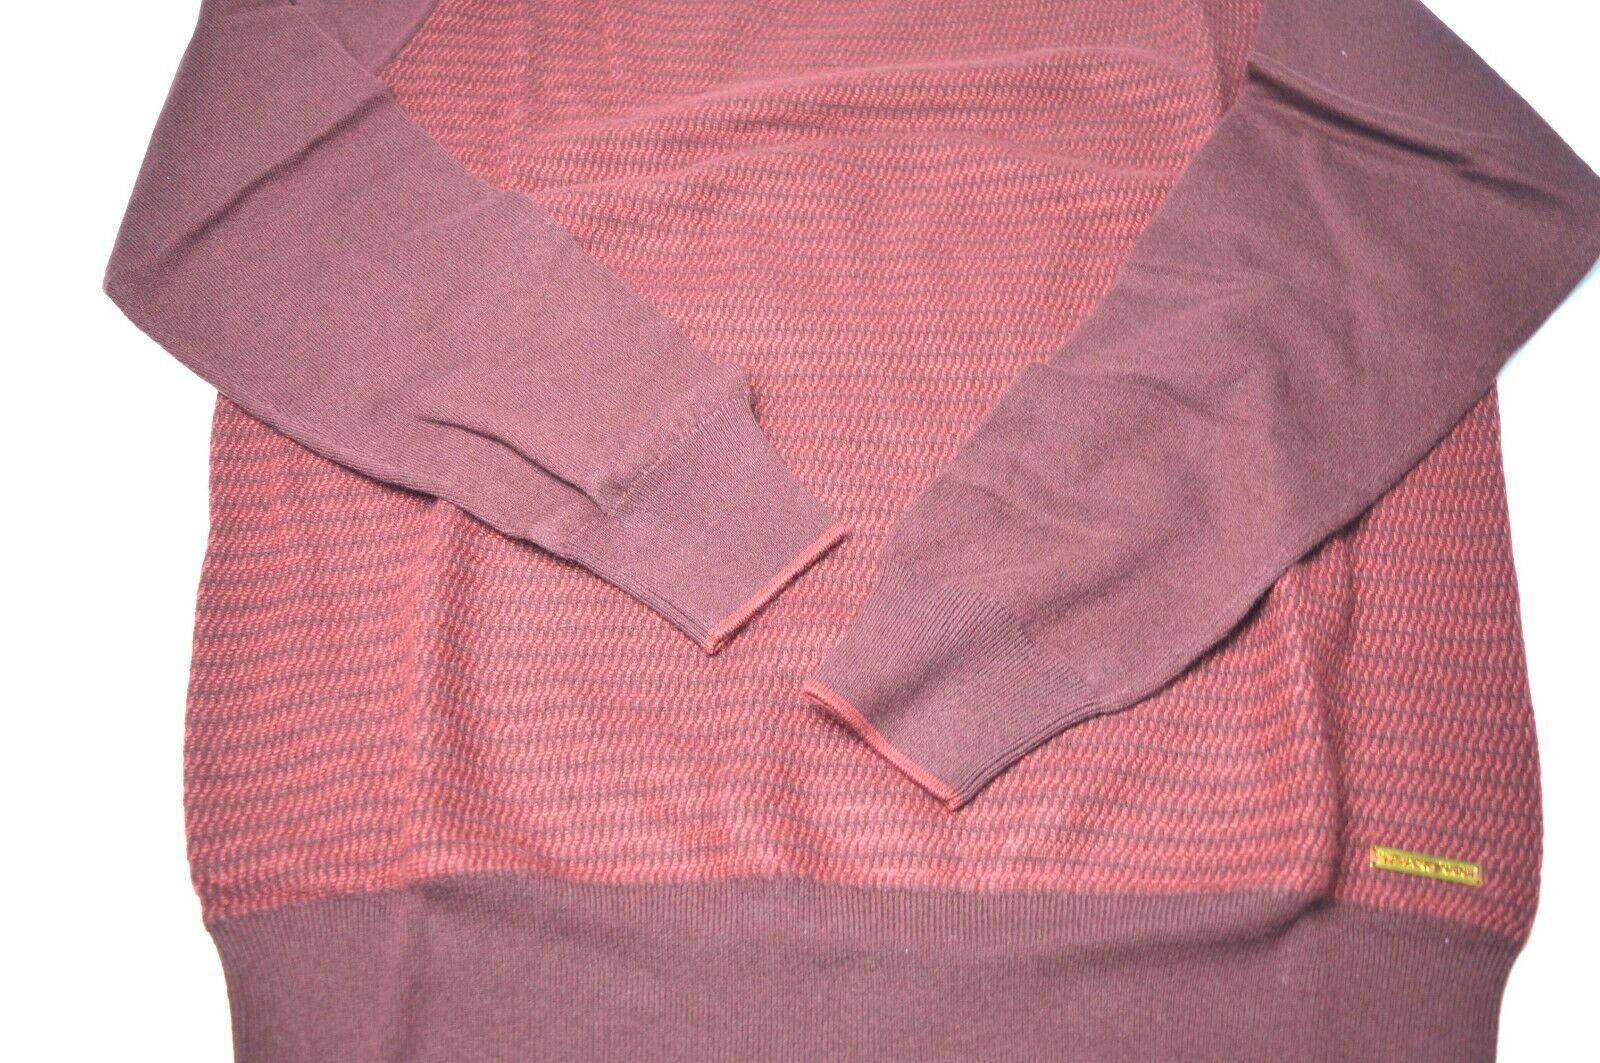 NEW   Sweater  1850,00 STEFANO RICCI Sweater   Cashmere Silk Size M Us  50 Eu (COD 17) 2c7523